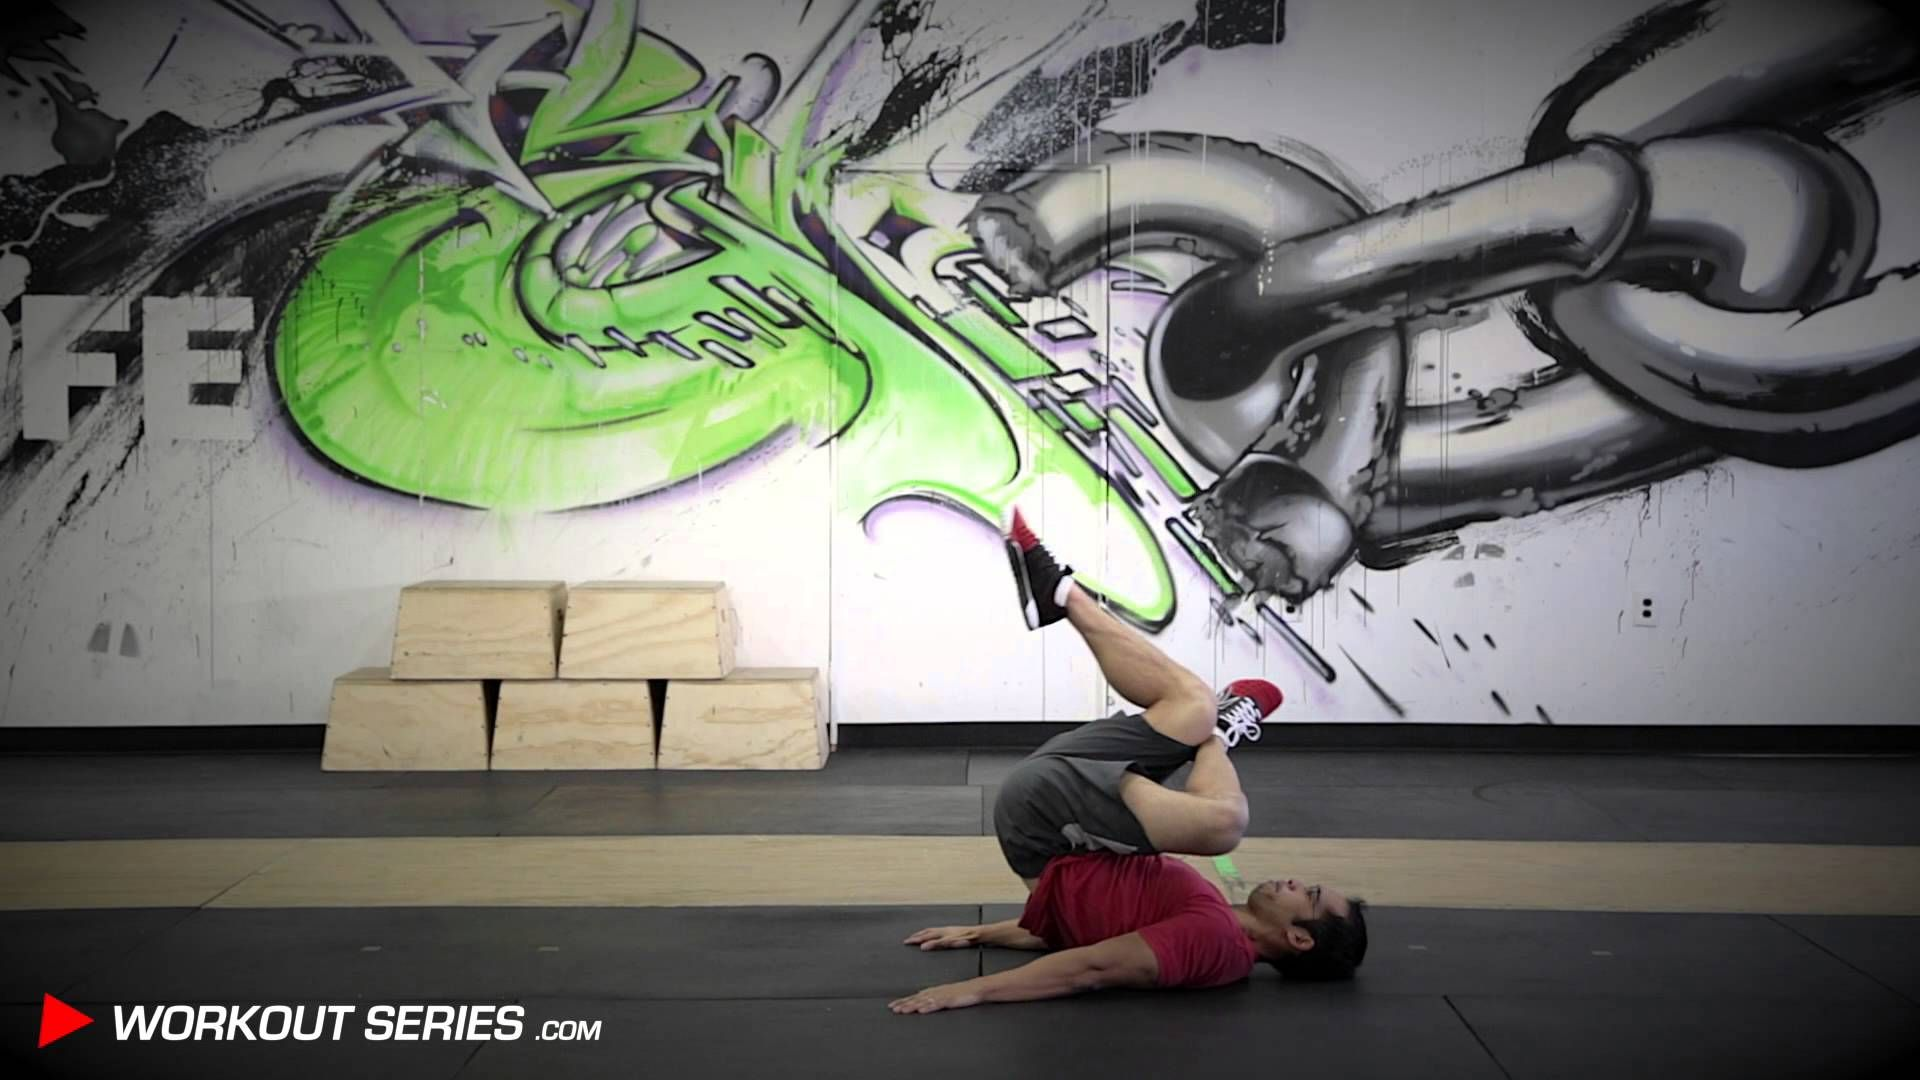 Exercise of The Day:  Crossed Leg Reverse Crunch Left  Do you want to take on full-length workout videos - when and where it's convenient to you? Go to WorkoutSeries.com and access it now for FREE.